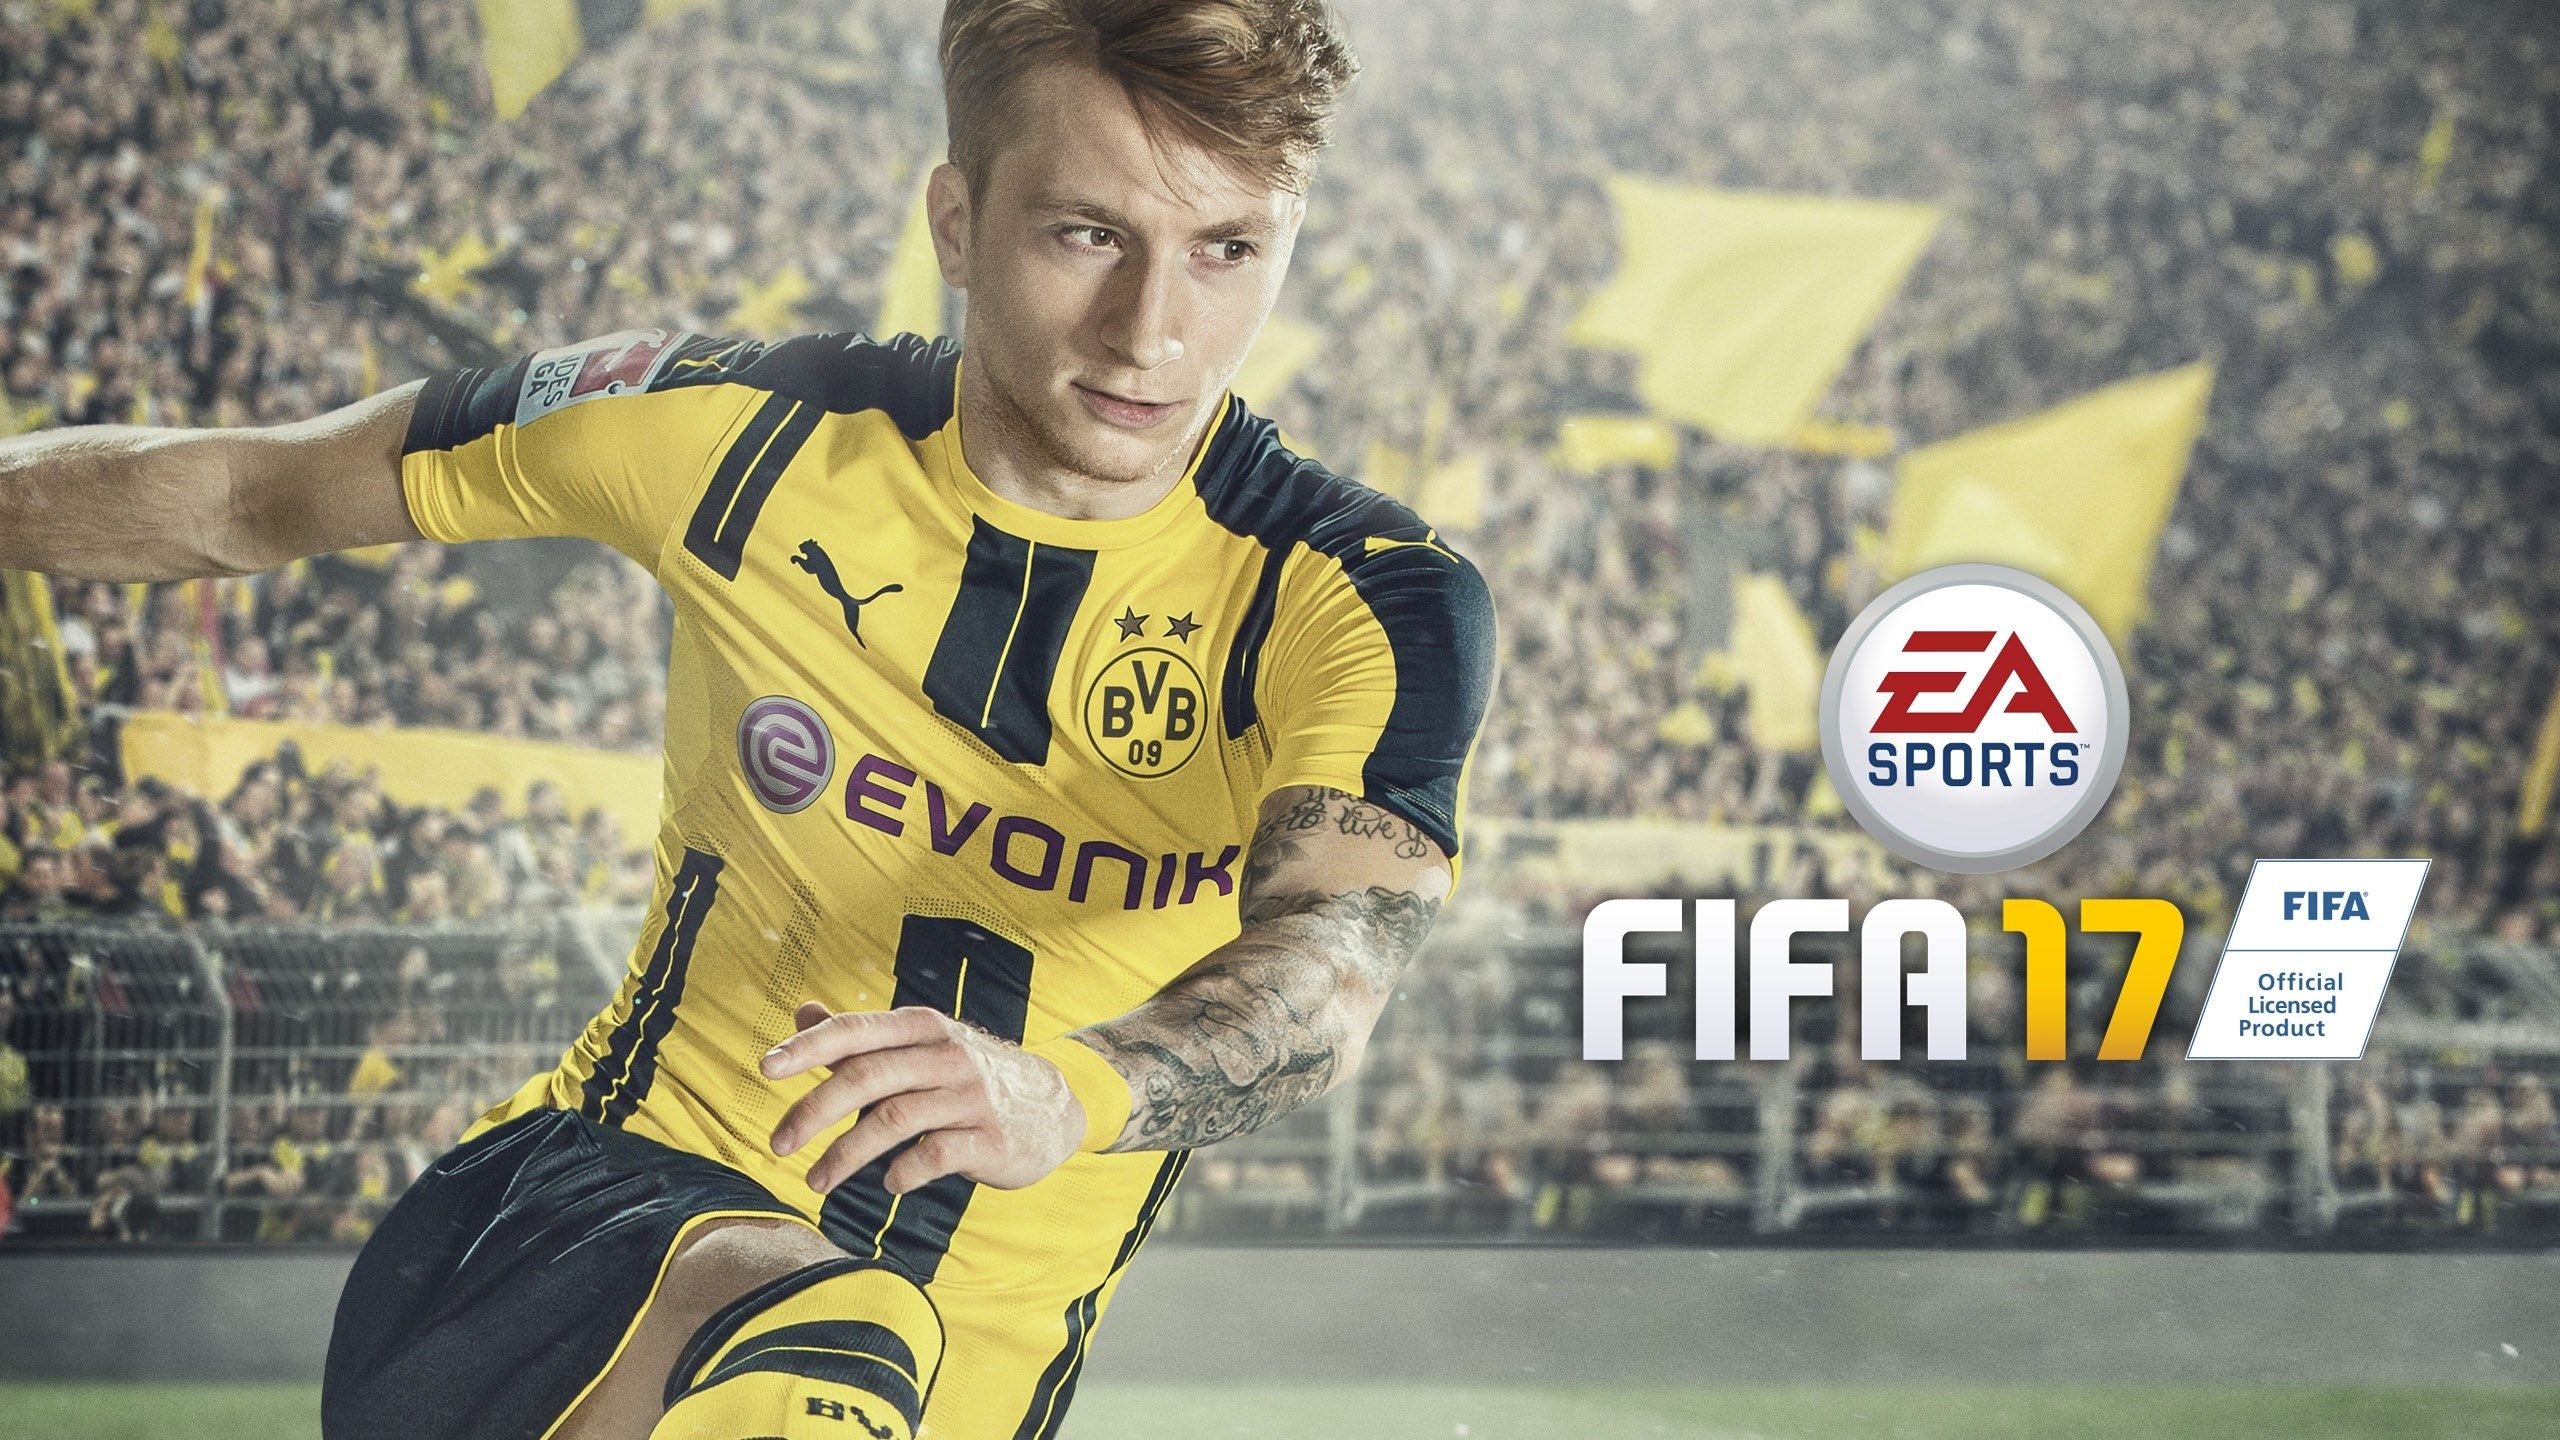 Fifa 17 wallpaper hd backgrounds images fifa 17 category fifa 17 wallpaper hd backgrounds images fifa 17 category voltagebd Gallery